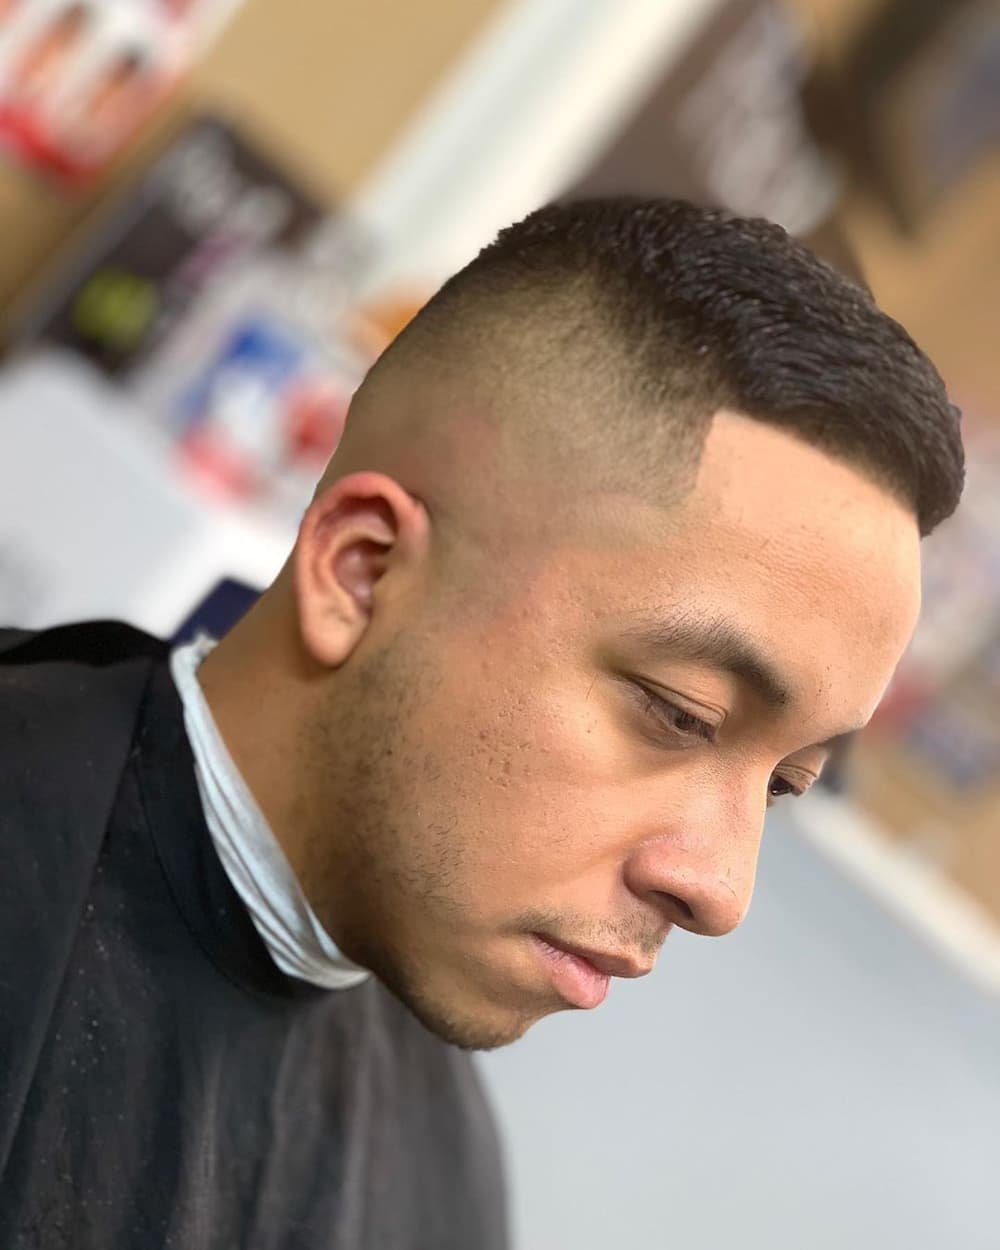 Astounding 20 High And Tight Haircut Ideas For Men Legit Ng Natural Hairstyles Runnerswayorg